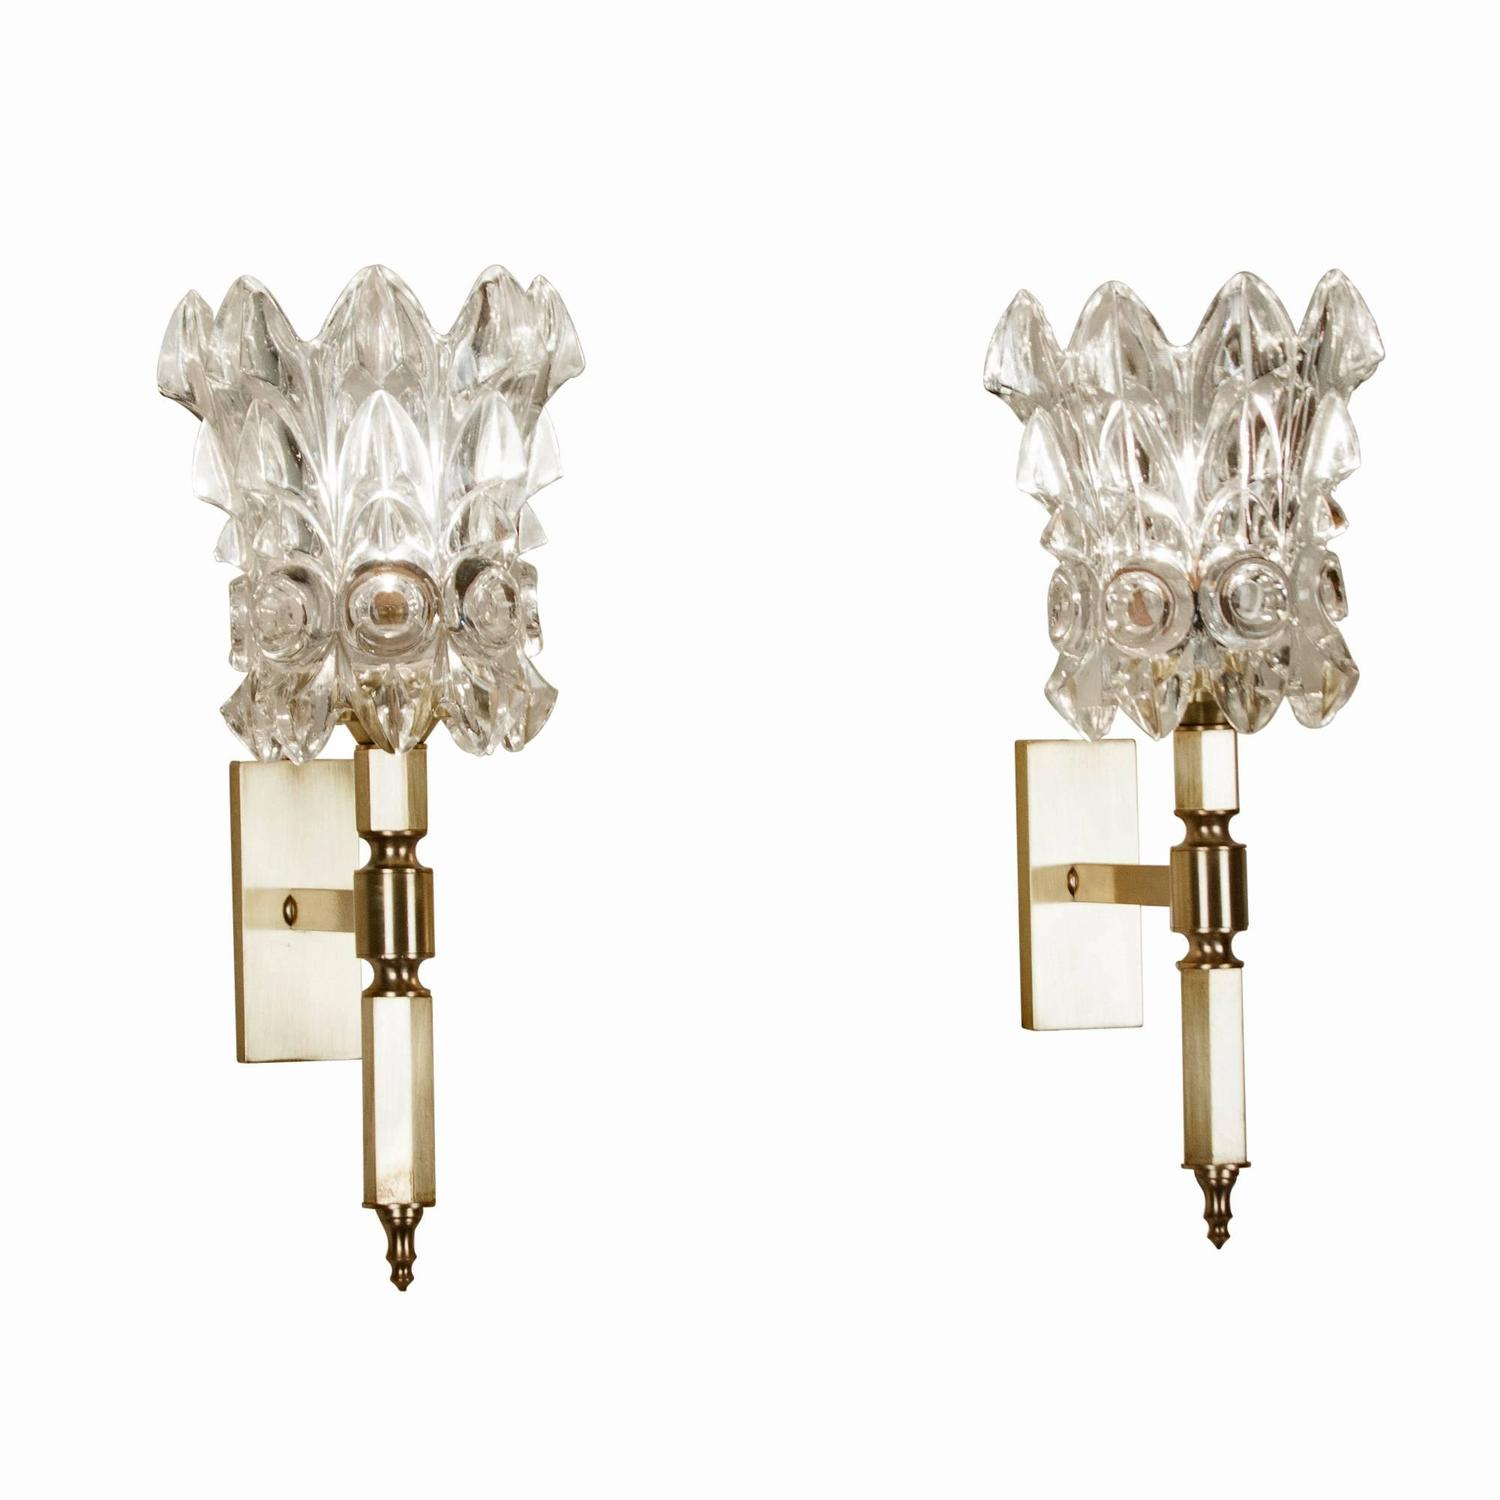 Italian Crystal Wall Lights : Pair of Faceted Crystal Wall Sconces, Italian 1960s at 1stdibs